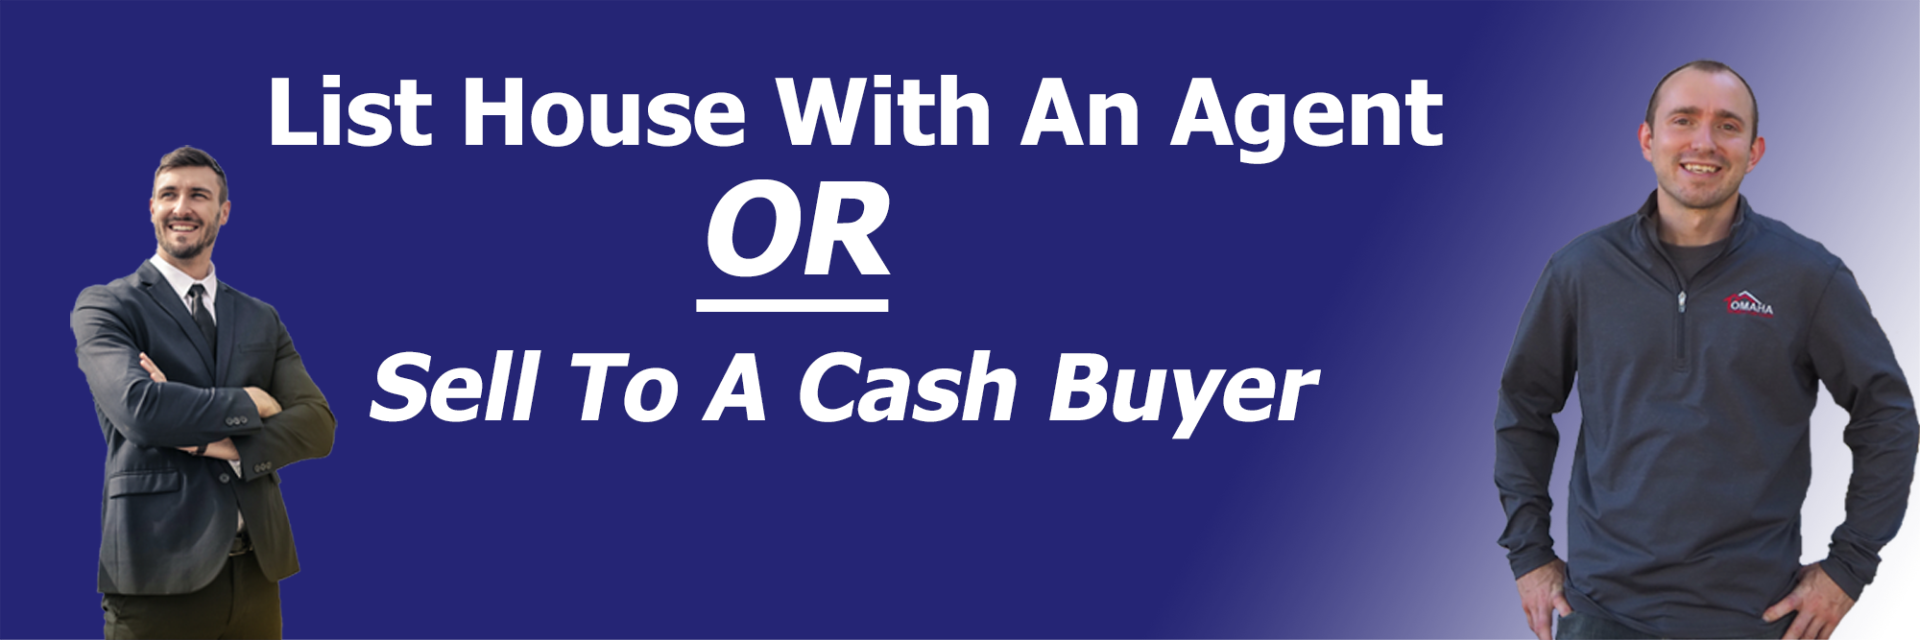 should i list my house with an agent or sell to a cash buyer omaha